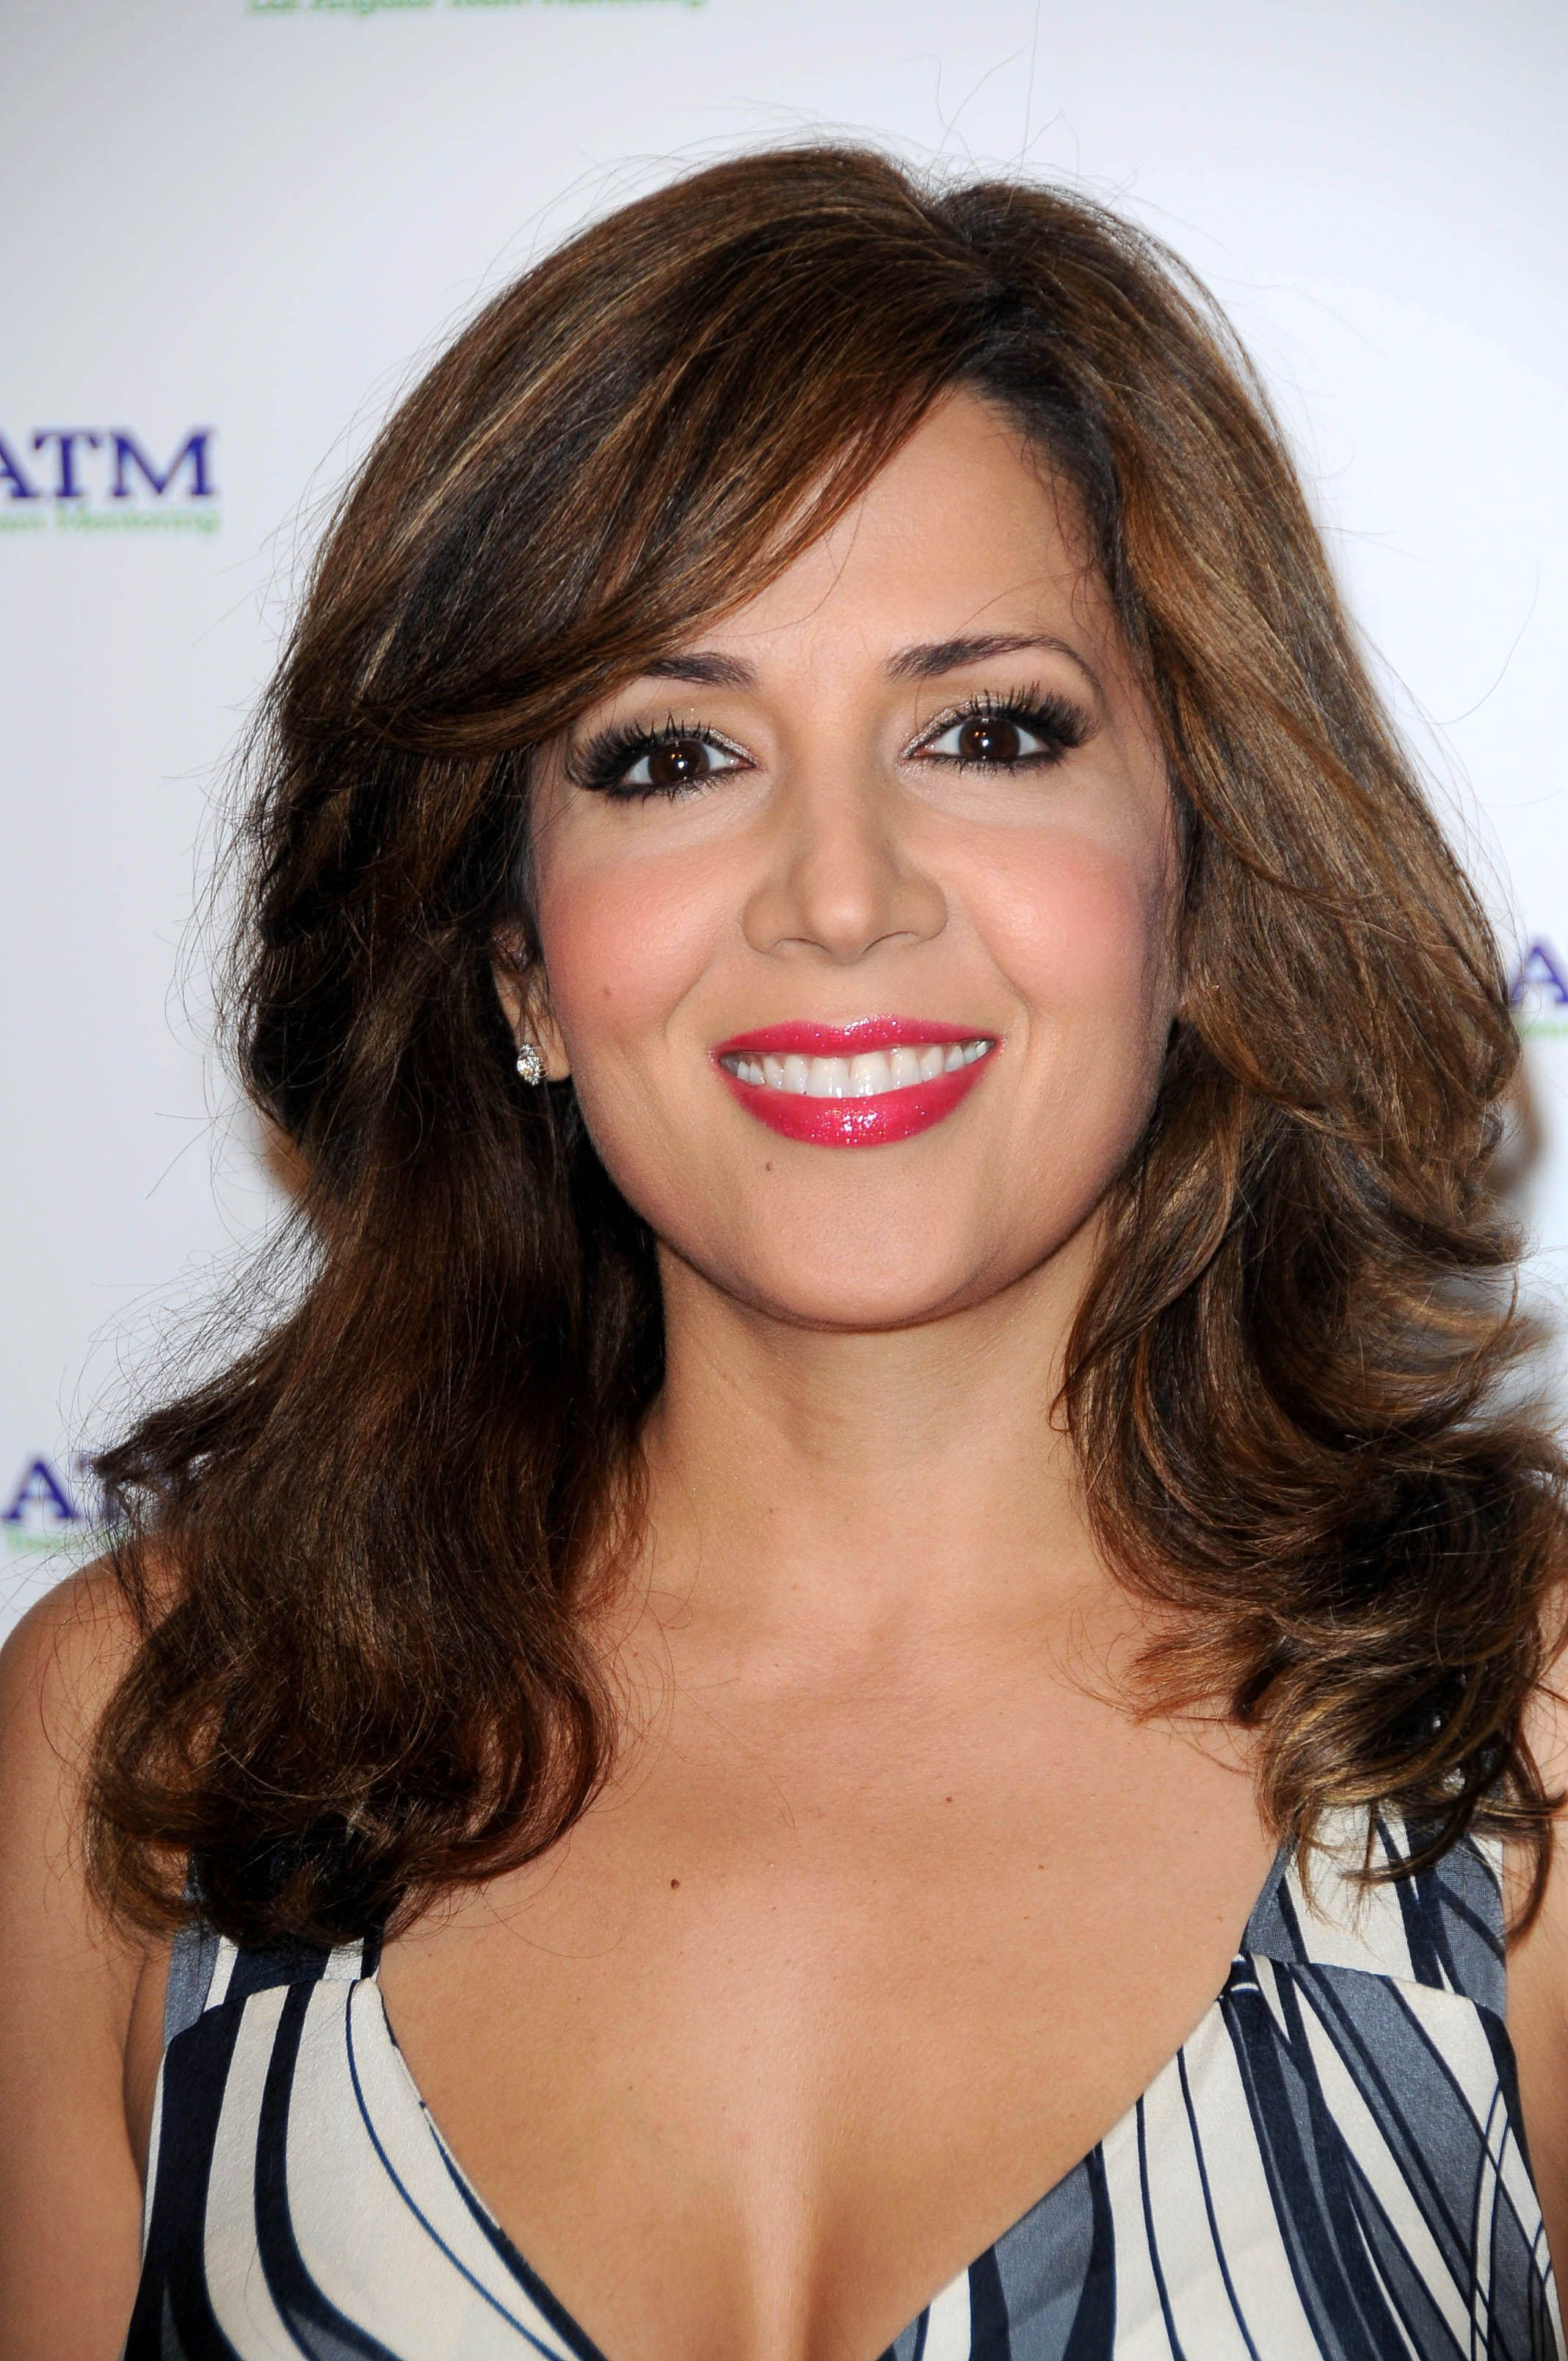 Pin by Jerry Eakle on Maria Canals-Barrera | Maria canals